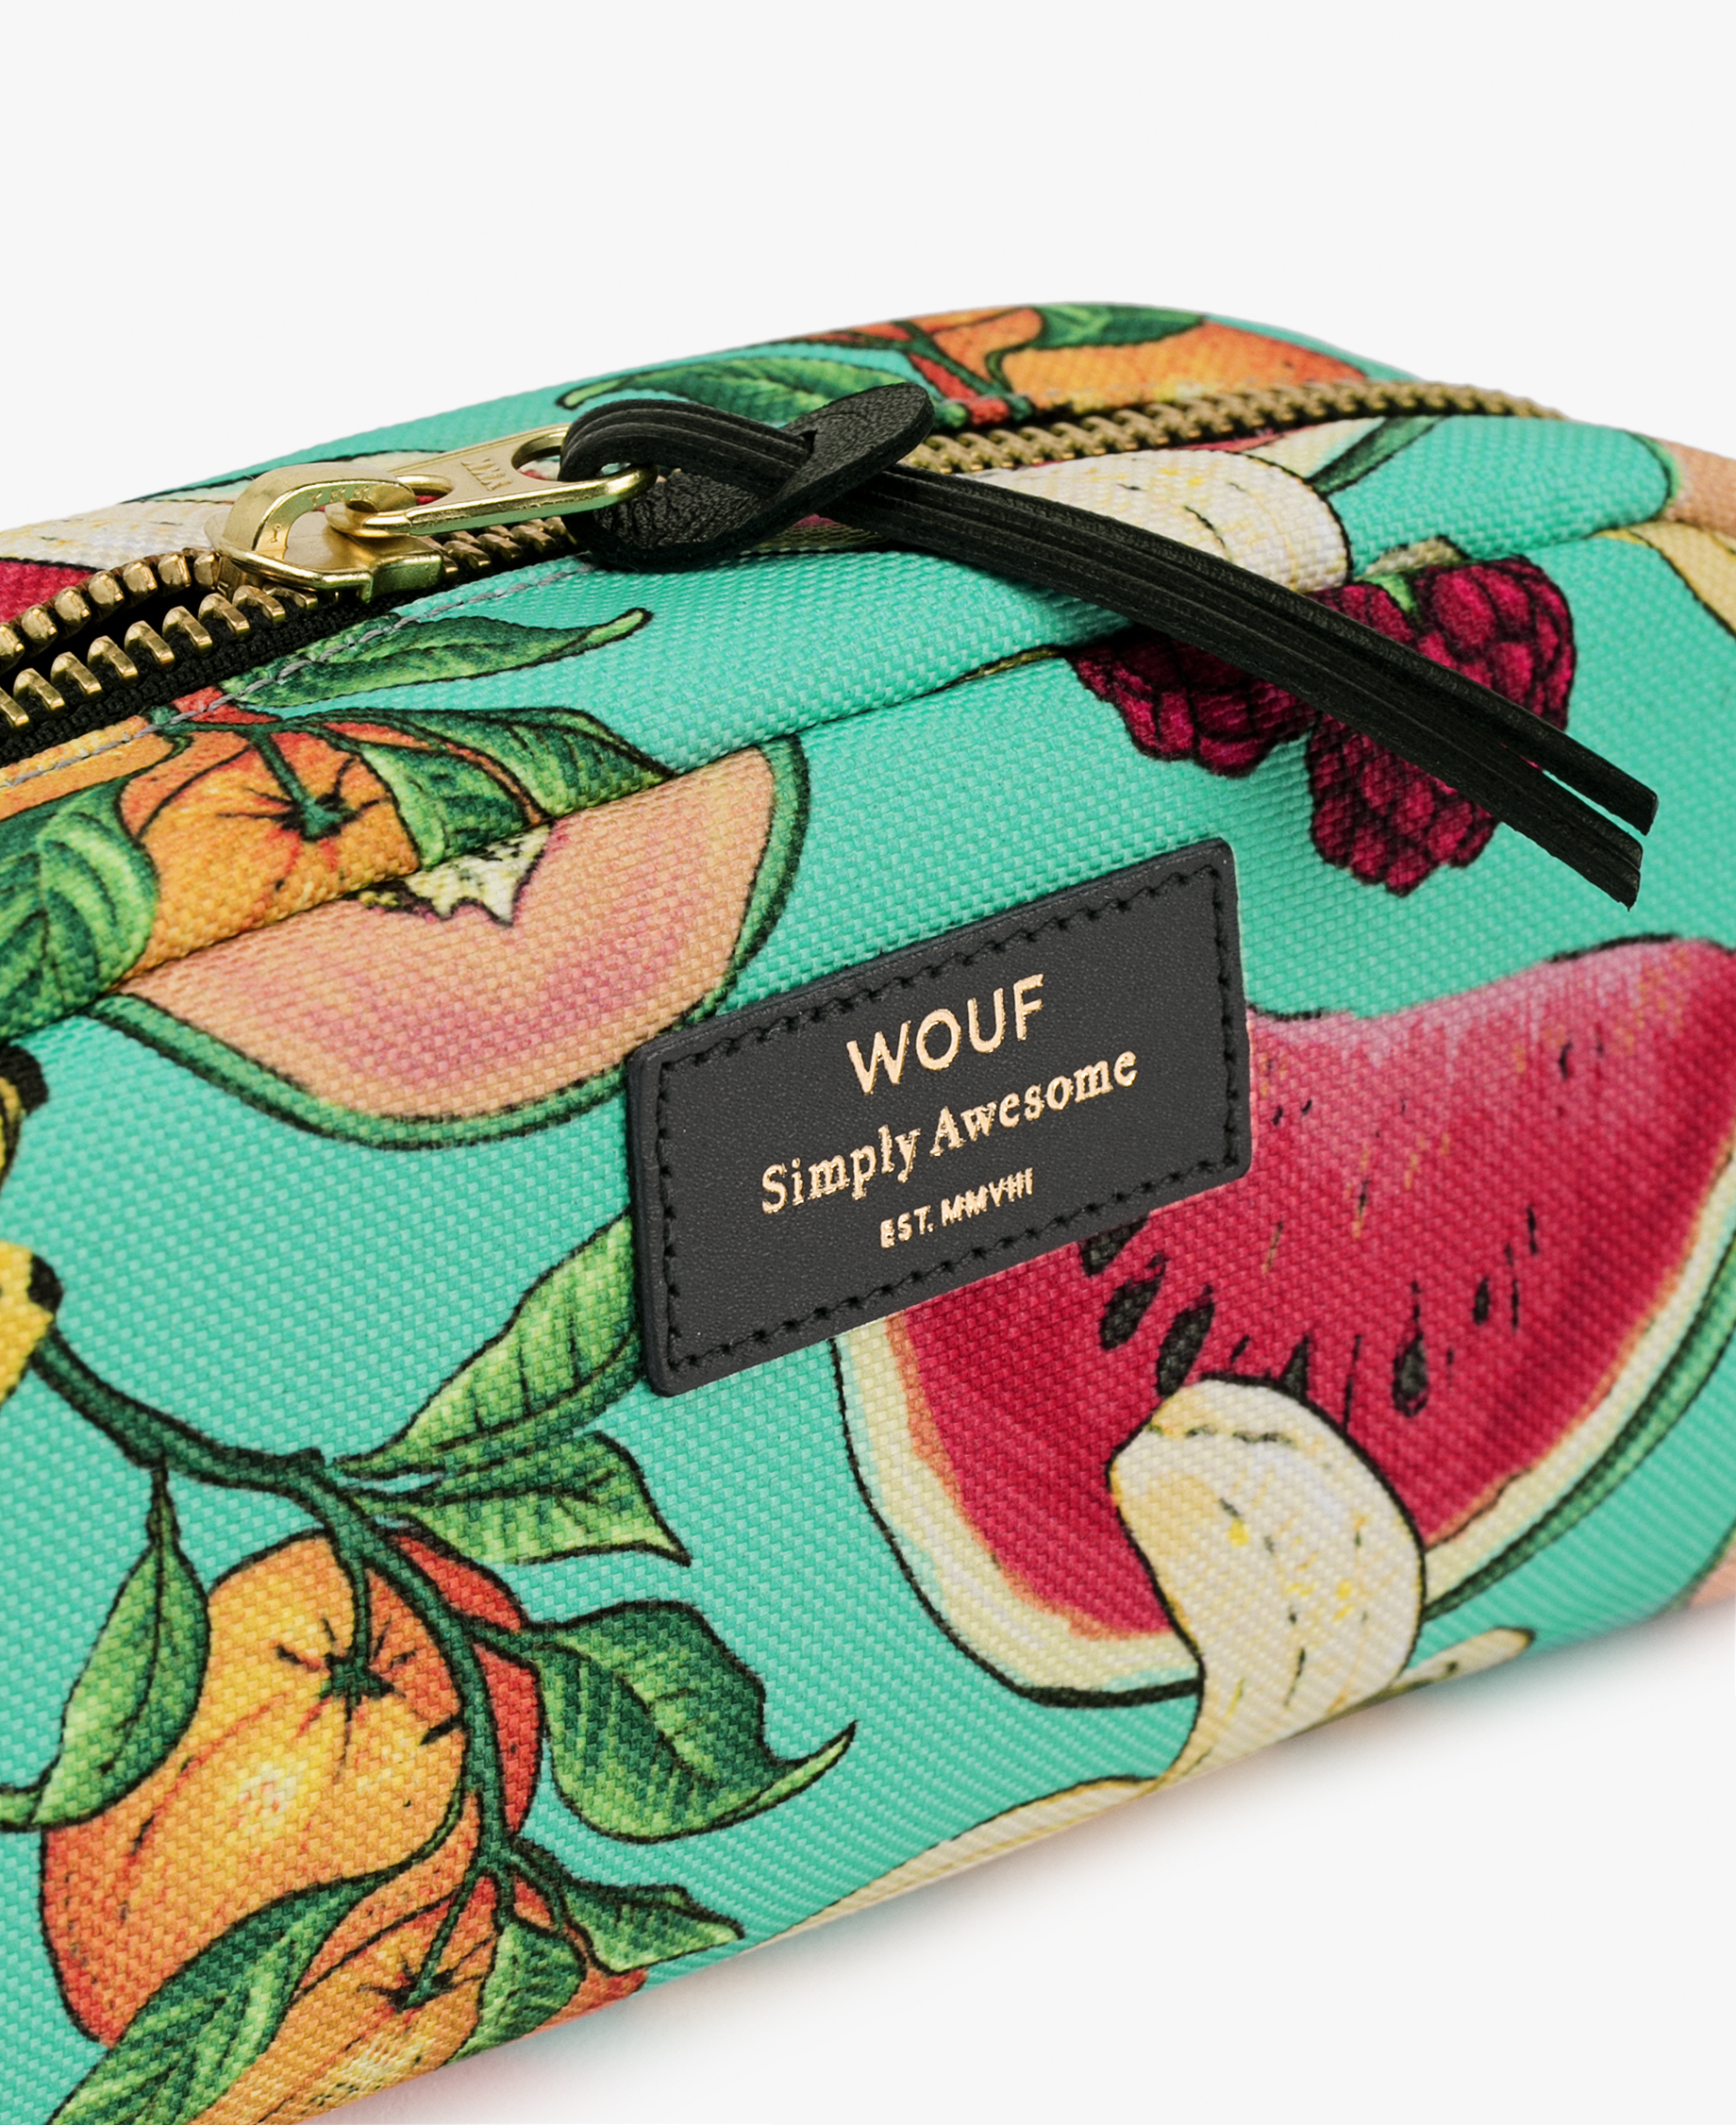 colorful toiletry bag